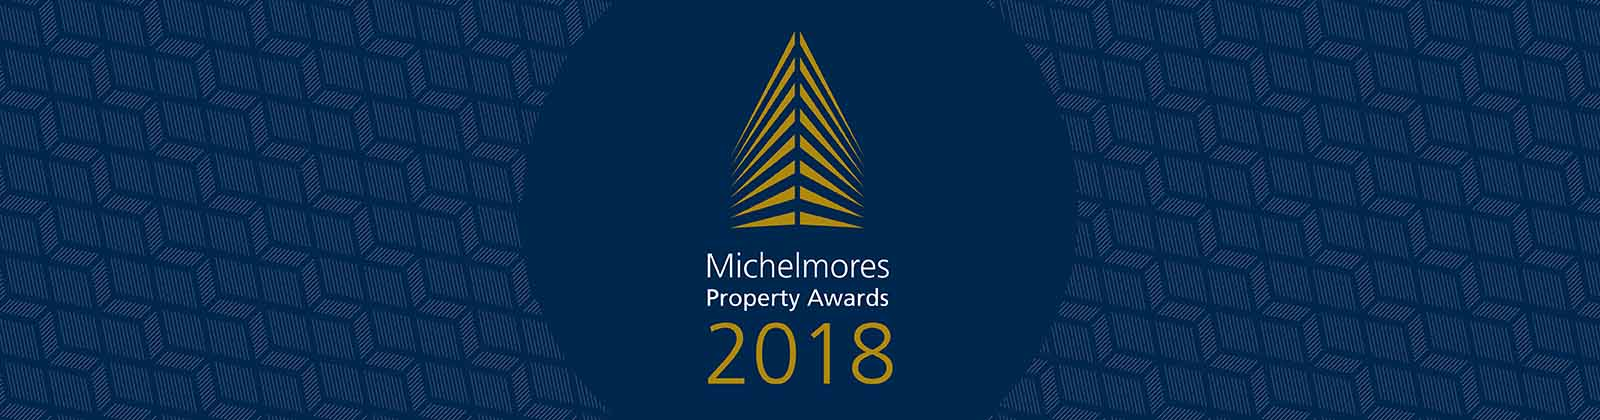 Michelmores Property Awards 2018